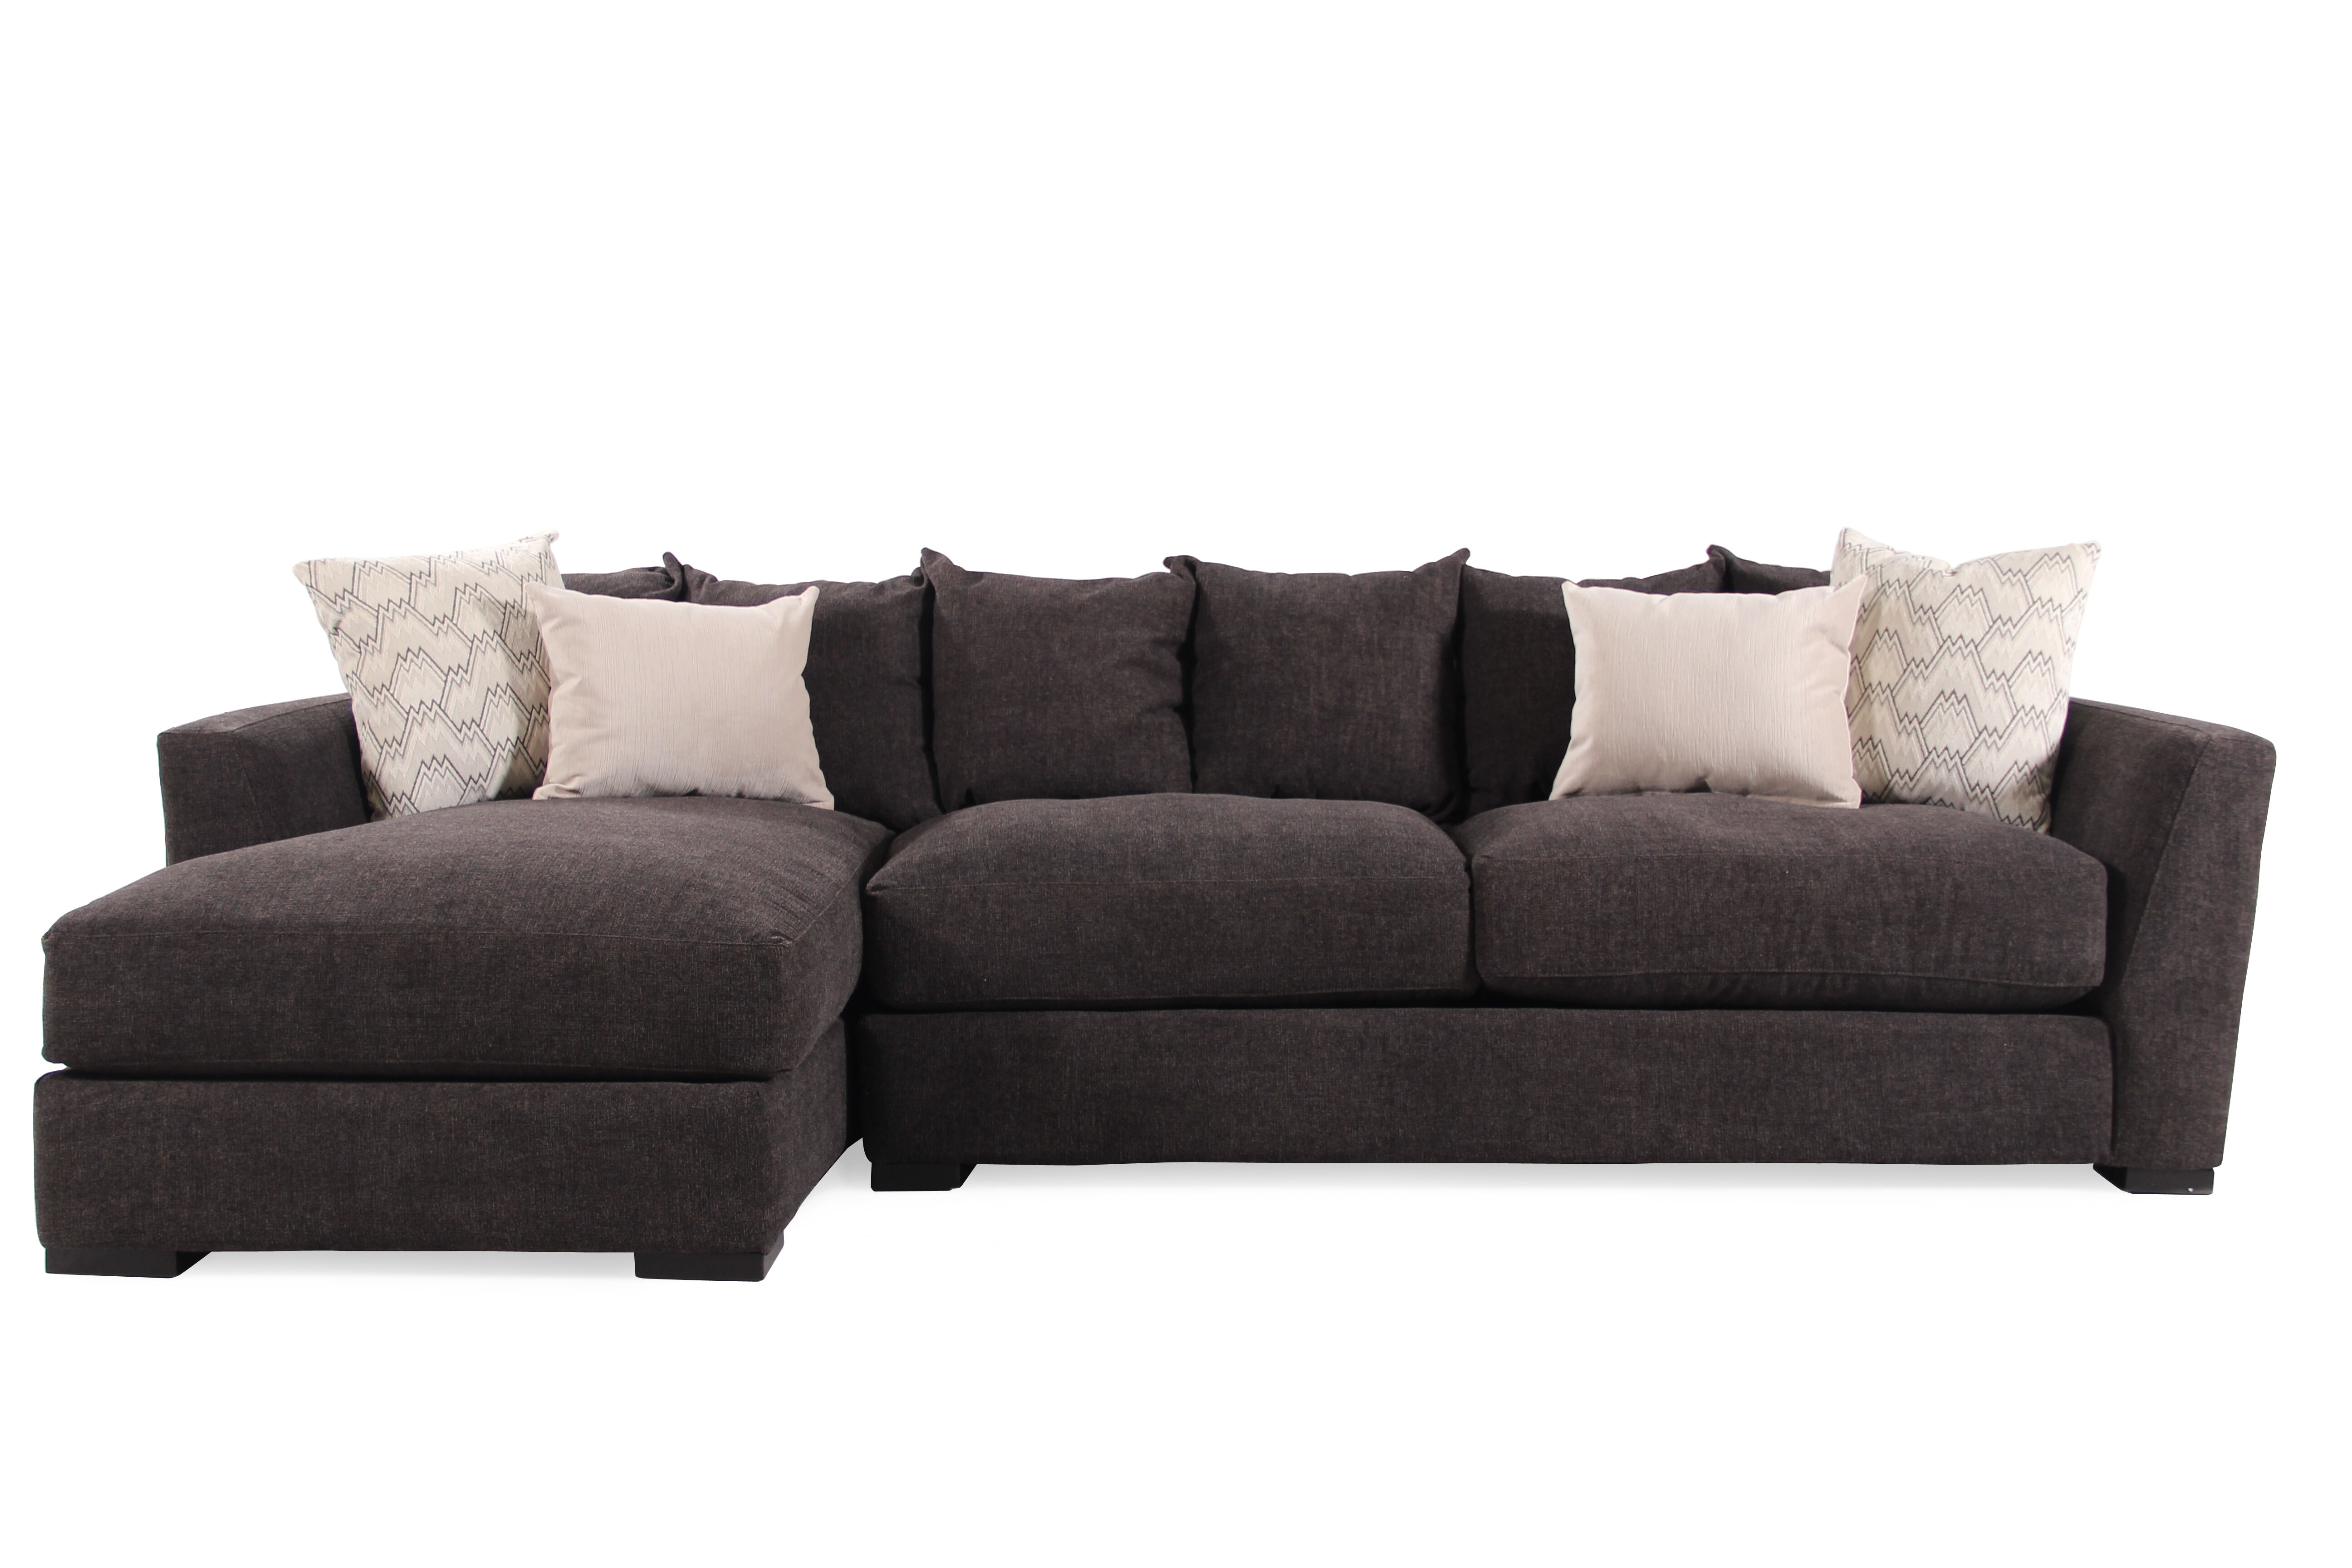 Jonathan Louis Harvey Two-Piece Sectional  sc 1 st  Mathis Brothers : jonathan louis sectional - Sectionals, Sofas & Couches